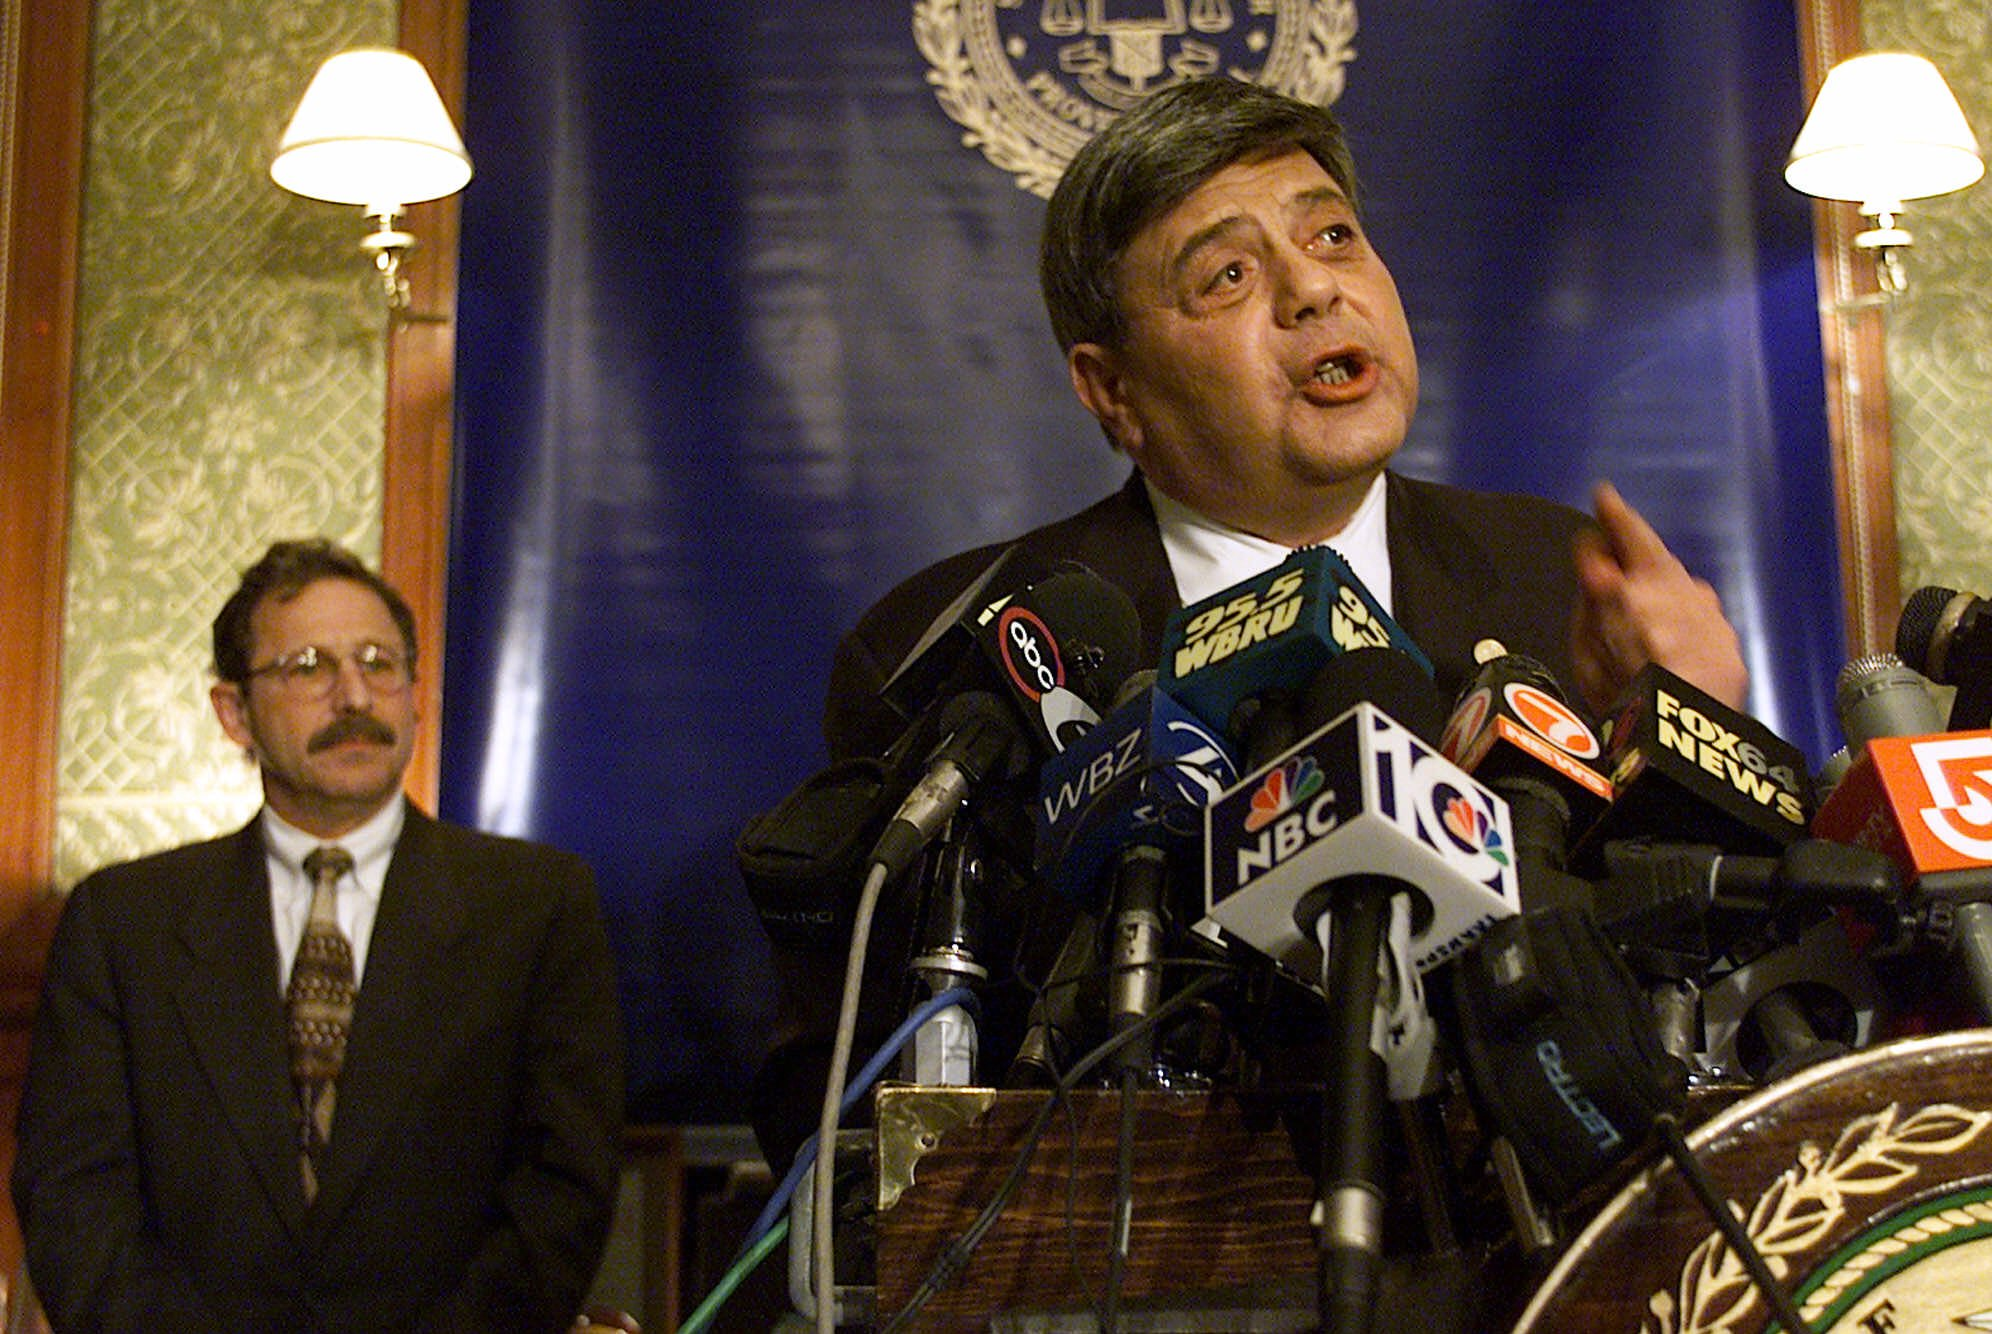 "Providence, R.I., Mayor Vincent Cianci Jr. speaks to members of the media as his attorney Richard Eggbert, left, stands behind him in his City Hall office, Monday, April 2, 2001. Cianci was indicted by a federal grand jury Monday on charges of racketeering and claims of taking bribes in exchange for city contracts and police promotions.  Cianci denied any wrongdoing, calling the details in the massive indictment ""nothing but lies."" (AP Photo/Victoria Arocho)"